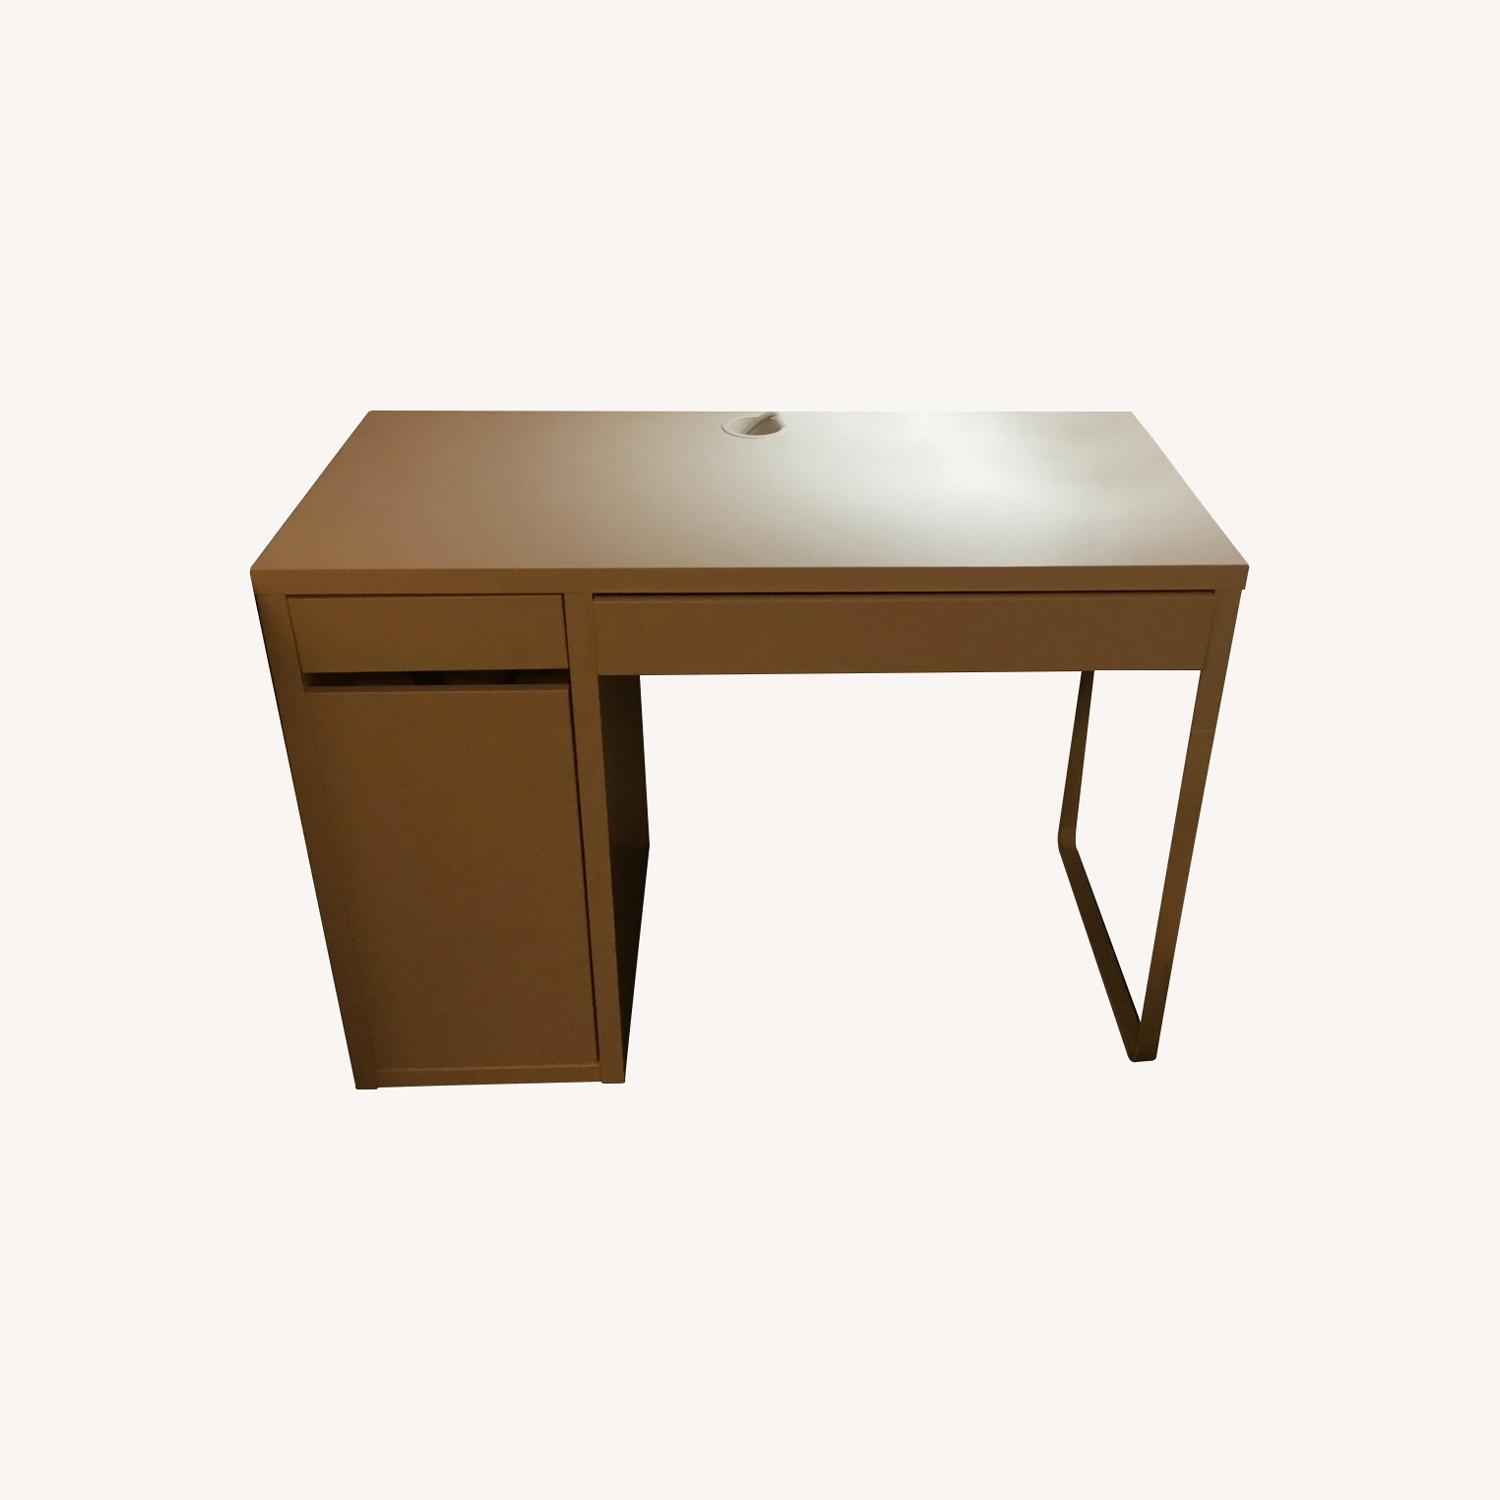 IKEA Office Desk (White) - image-0